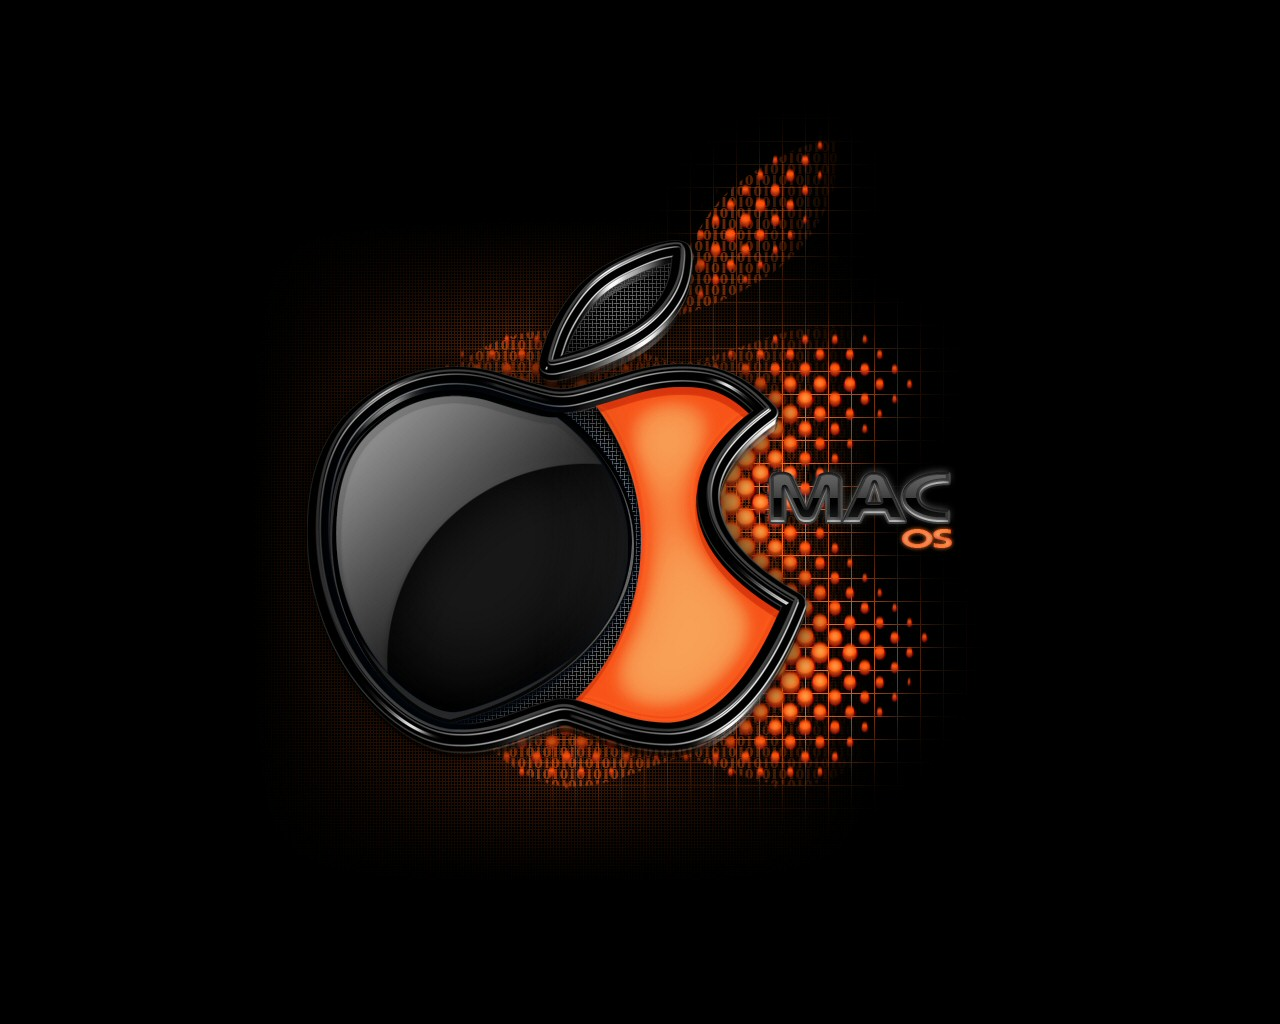 wallpapers hd apple mac wallpapers hd apple mac wallpapers hd 1280x1024